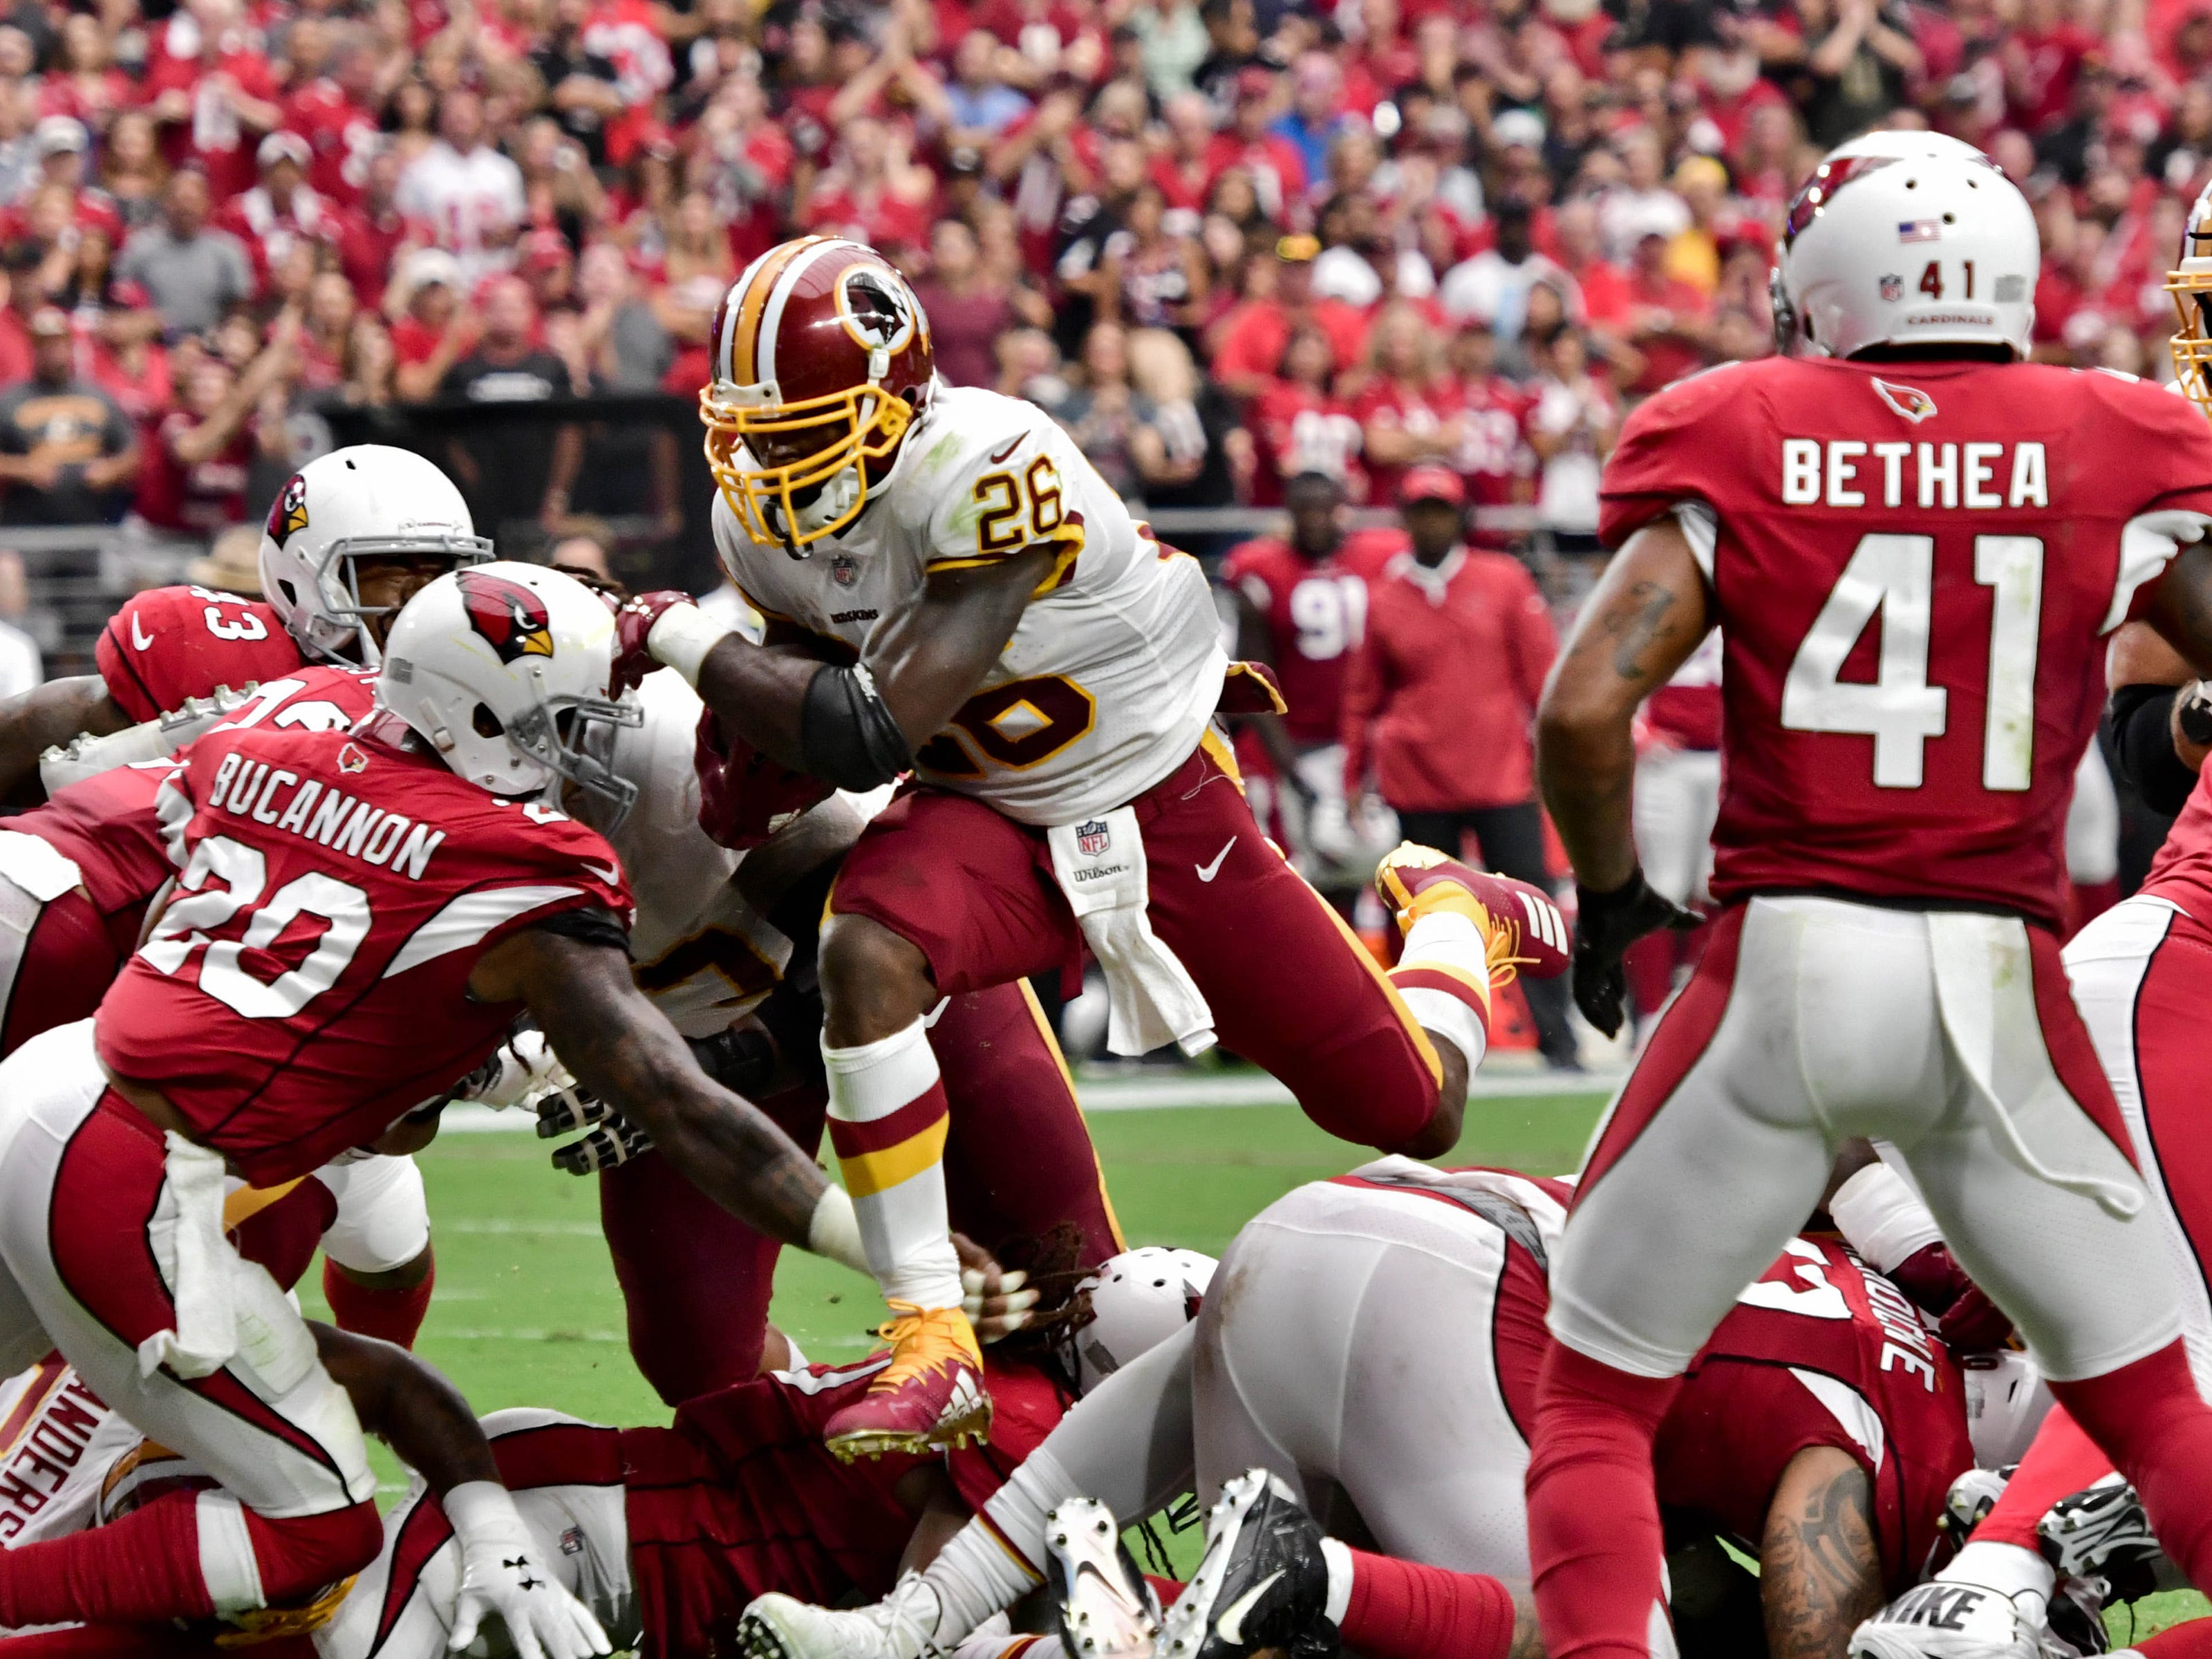 Sep 9, 2018; Glendale, AZ, USA; Washington Redskins running back Adrian Peterson (26) leaps over Arizona Cardinals defenders to score a touchdown in the first half at State Farm Stadium. Mandatory Credit: Matt Kartozian-USA TODAY Sports